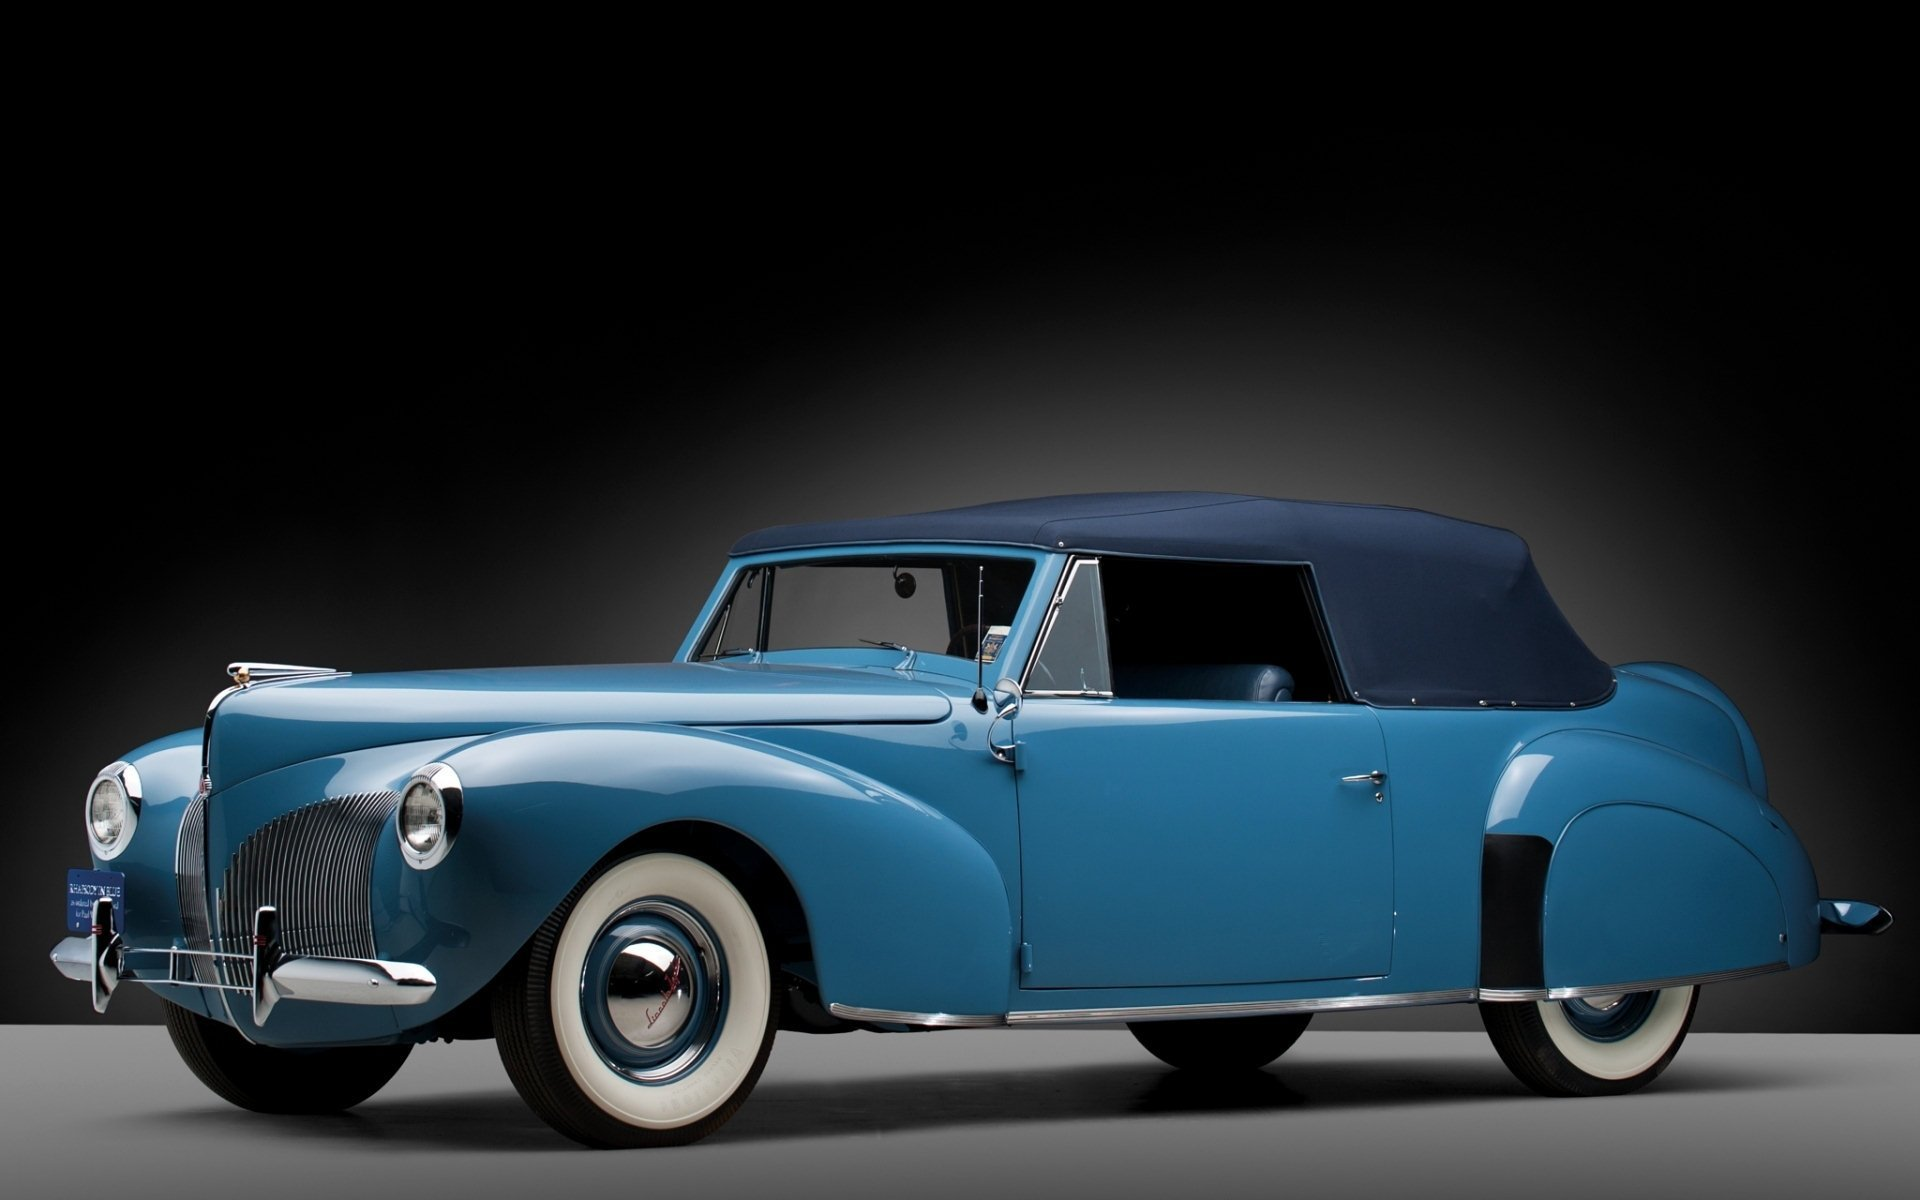 Latest 1939 Lincoln Zephyr Convertible Hd Wallpaper Background Free Download